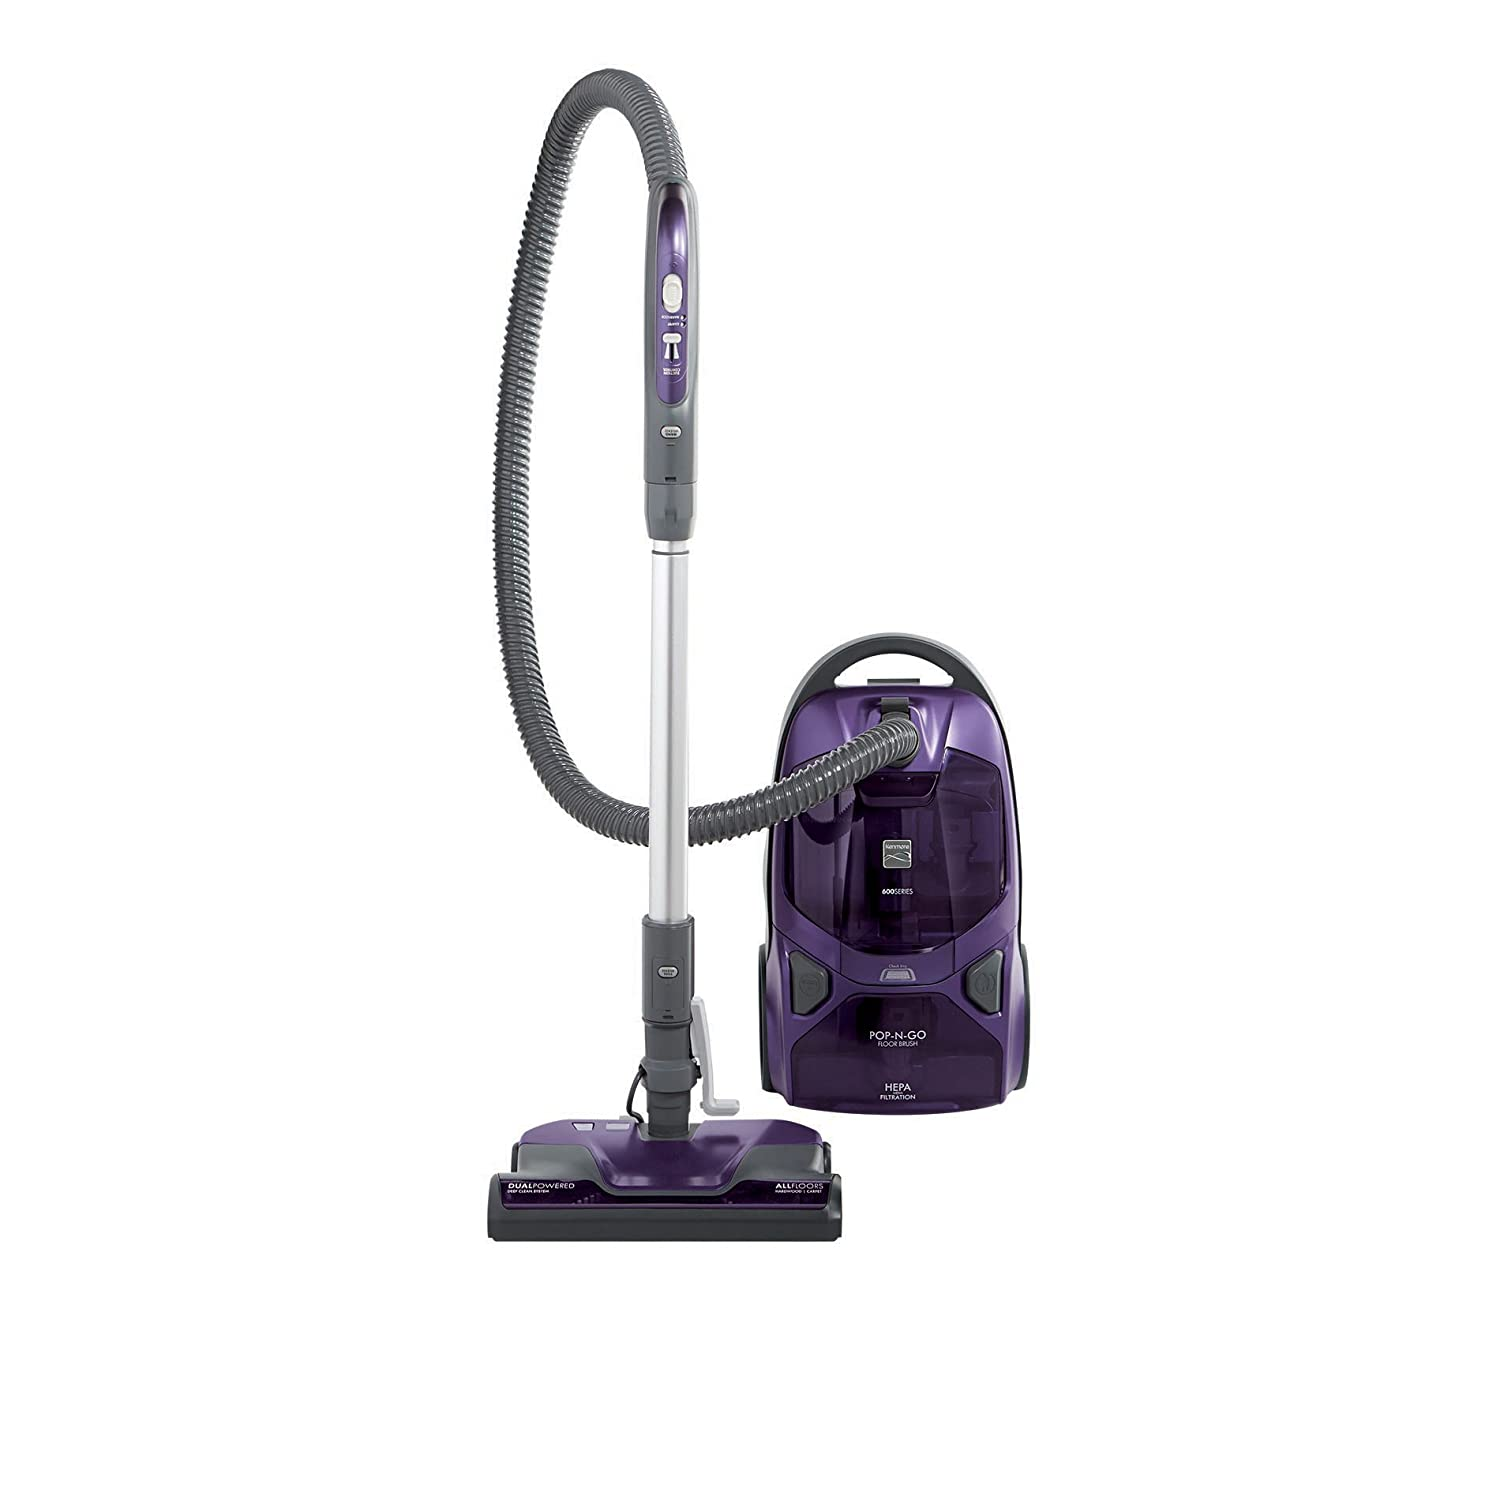 Kenmore 81614 - Best Canister Vacuum For Pet Hair